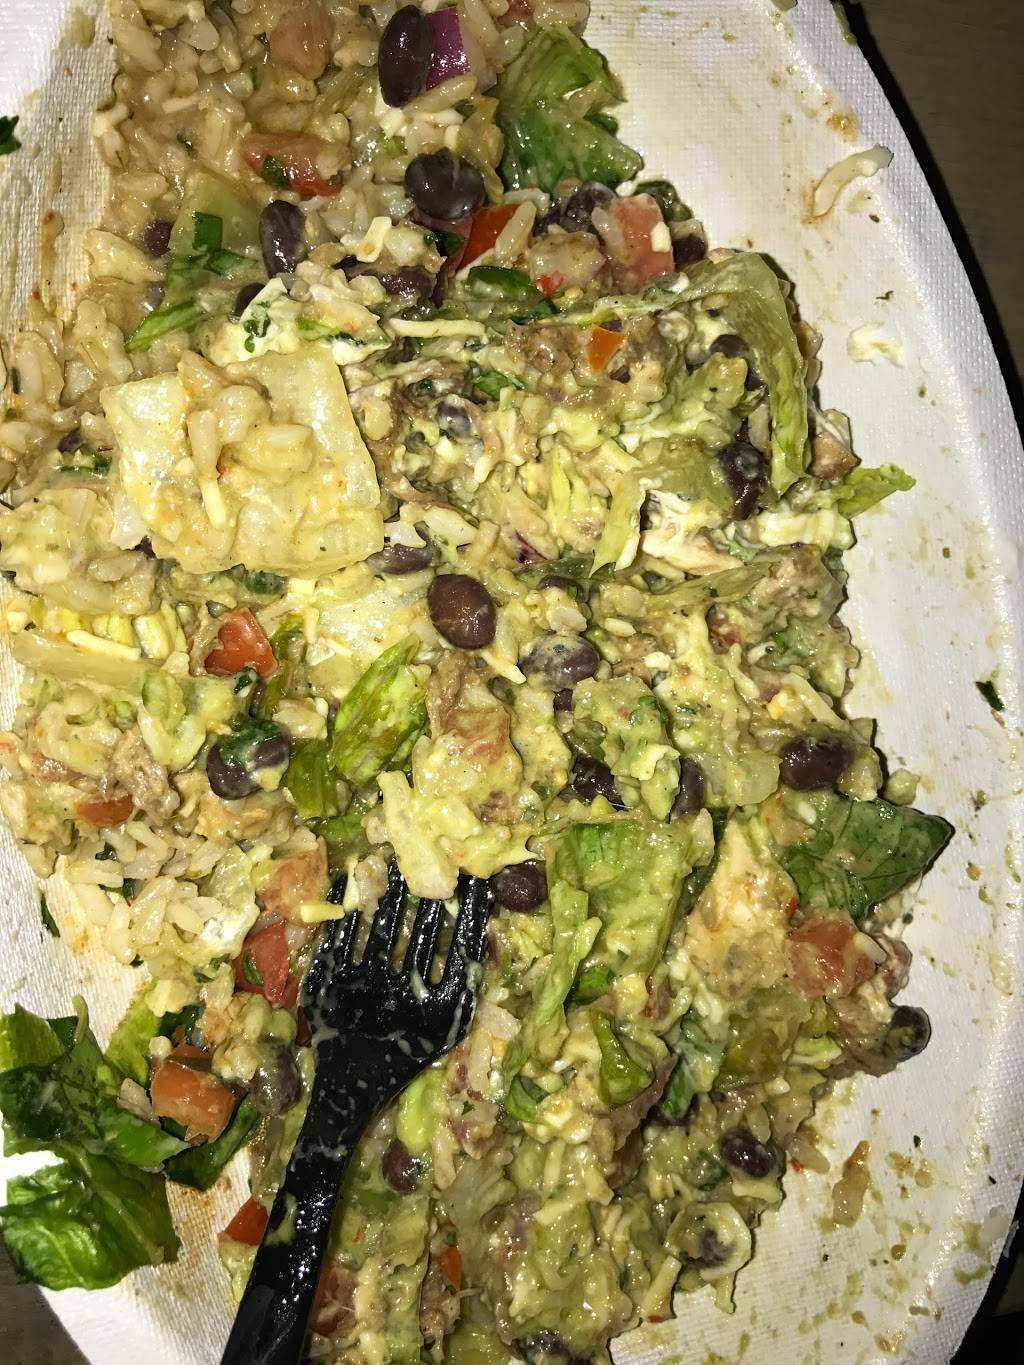 Chipotle Mexican Grill   restaurant   185 7th Ave, Brooklyn, NY 11215, USA   3477254450 OR +1 347-725-4450